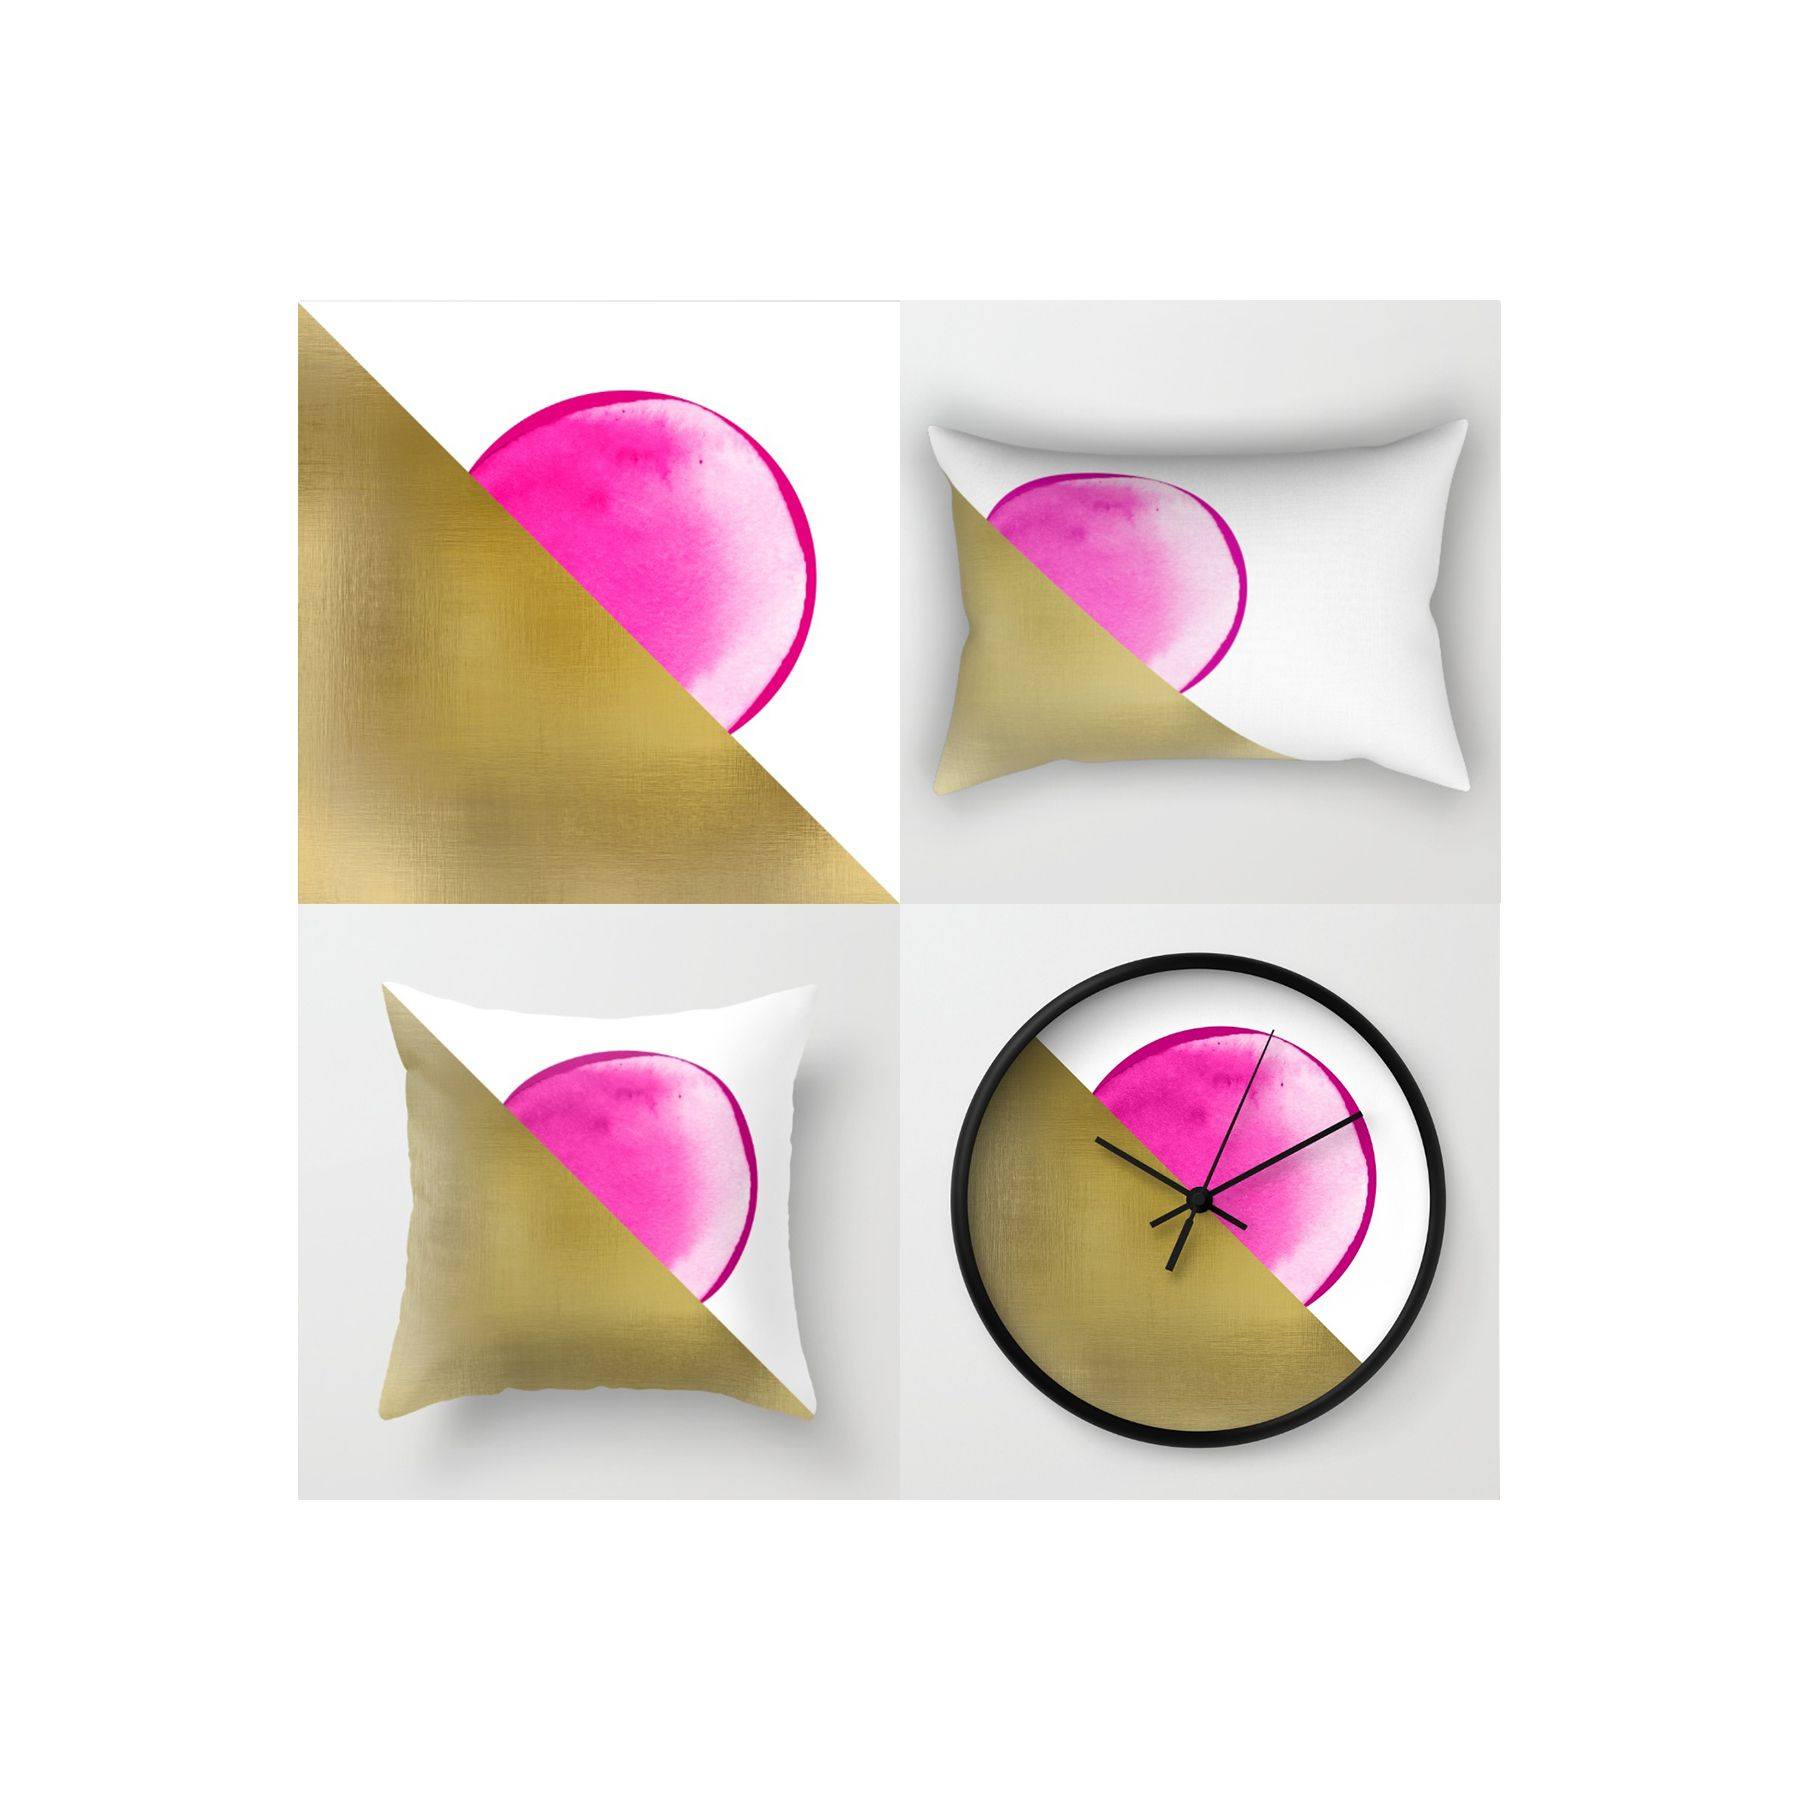 Playing with textures - Sunset #textures #texture #gold #sunset #pink #pillows #artprint #poster #deco #clock #shapes #round #triangle #geometric #design #diseño #abstract @society6